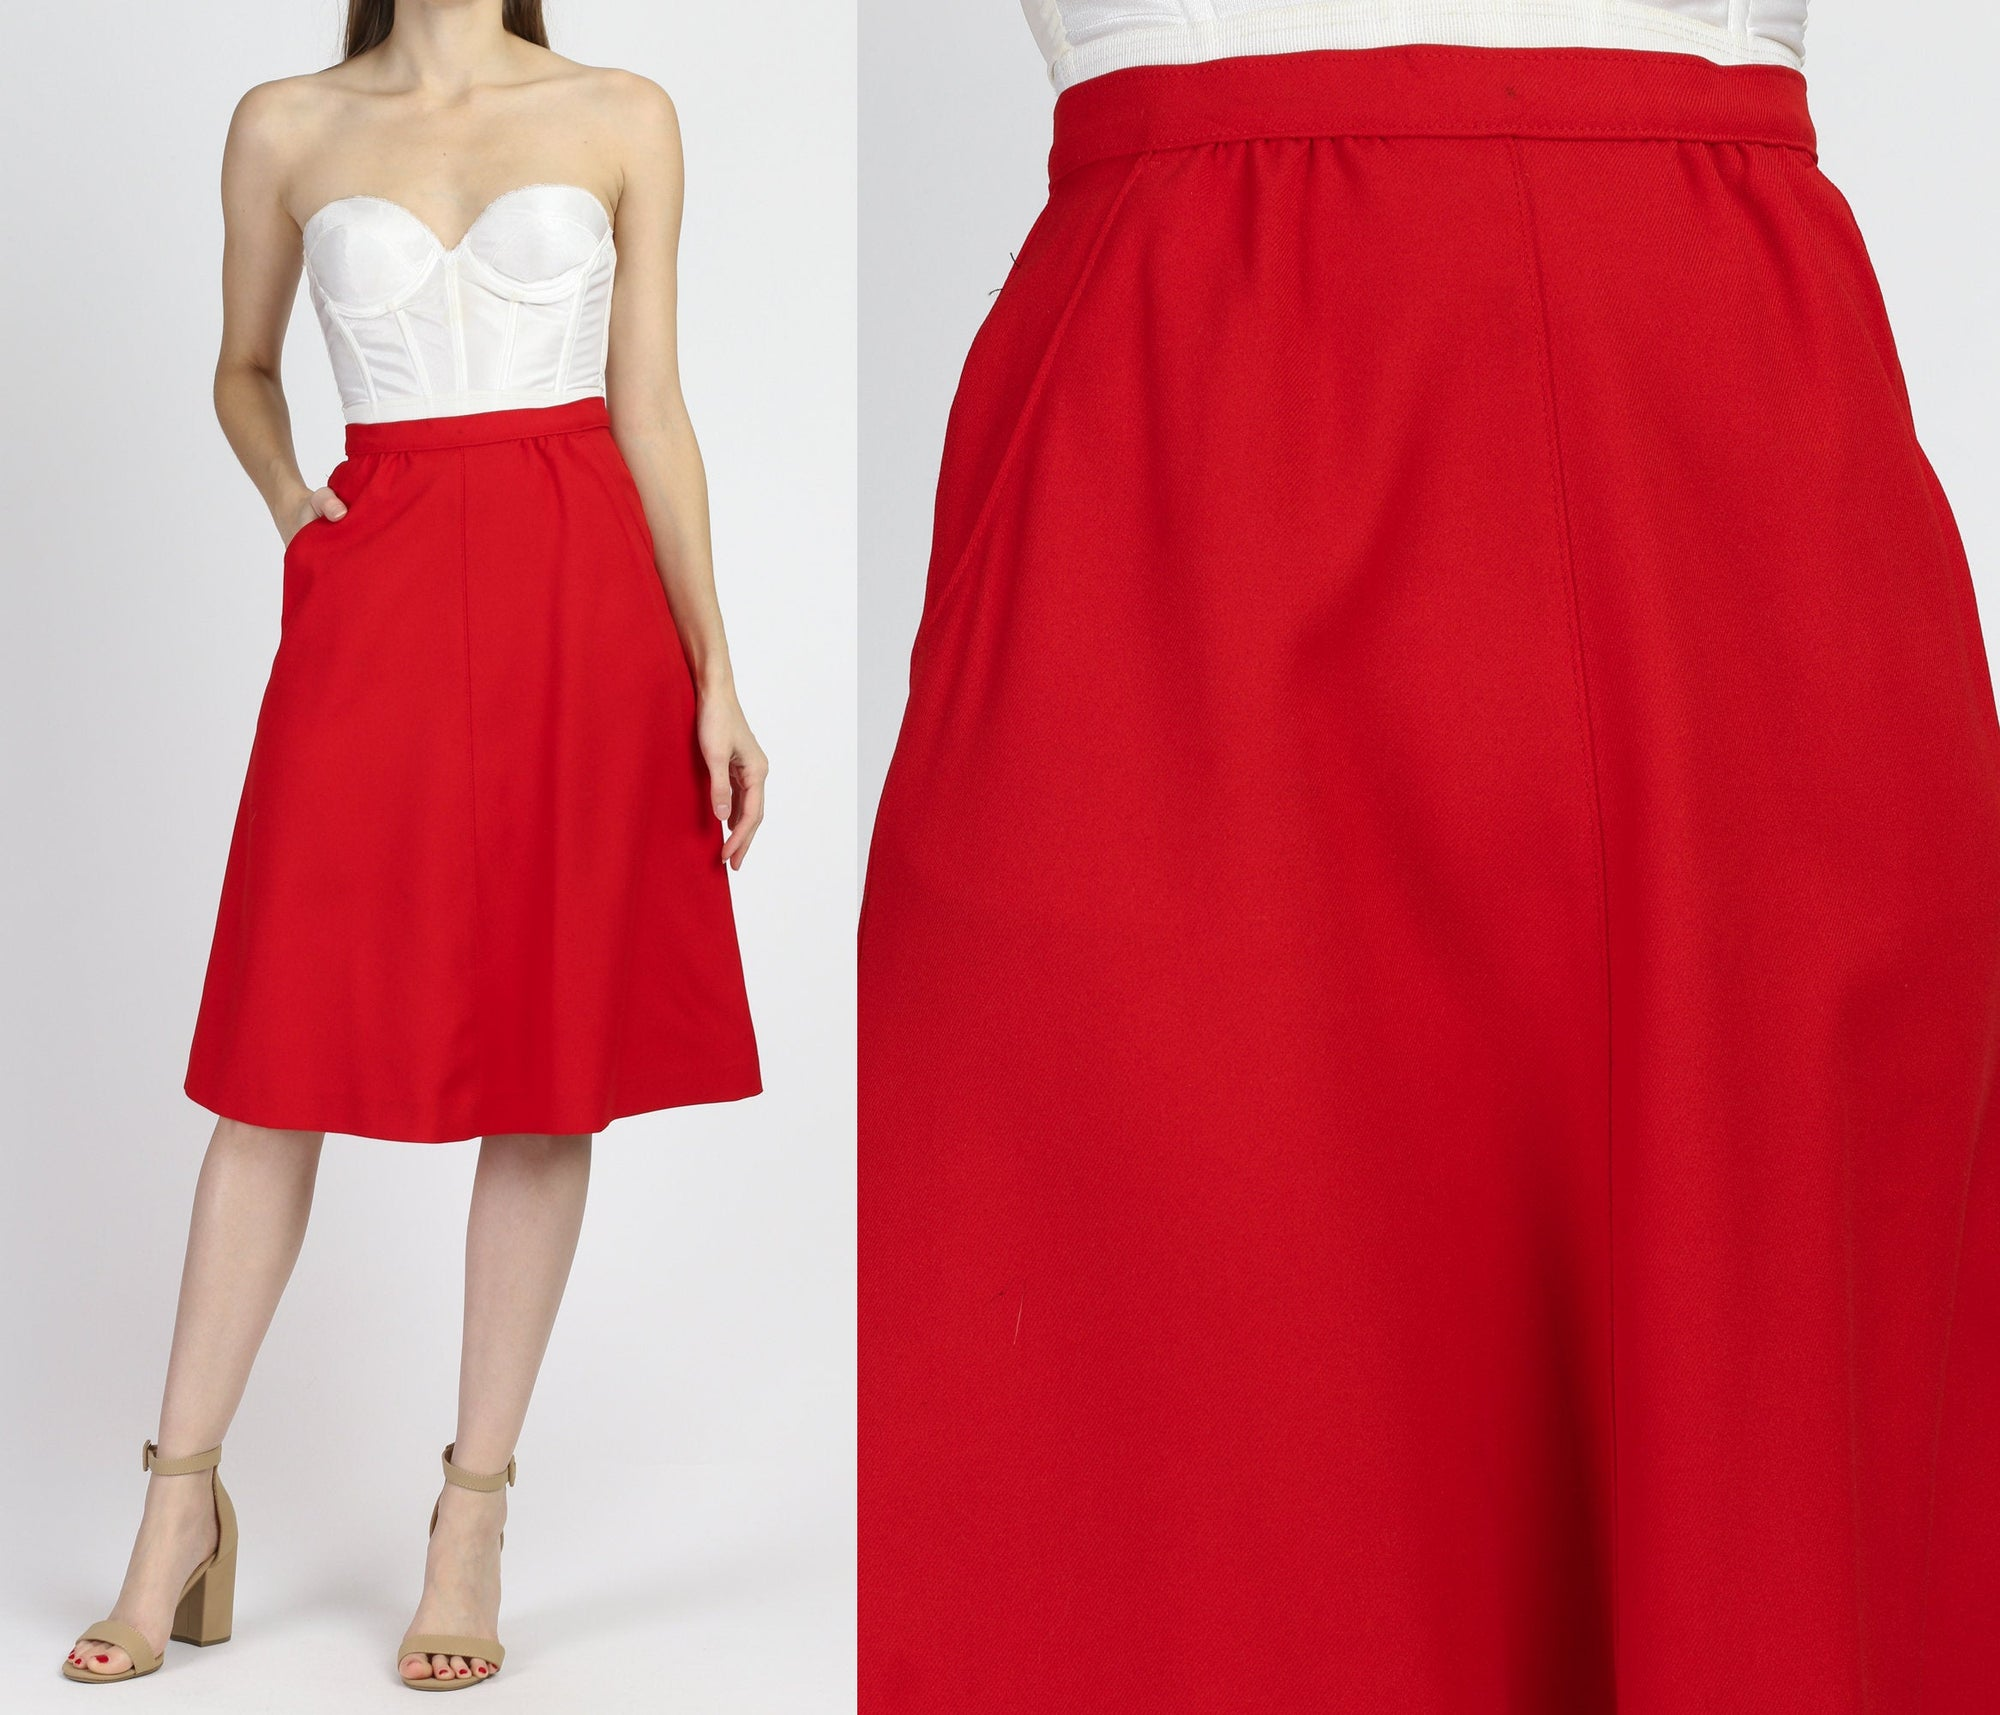 70s Red High Waist A Line Skirt - Small